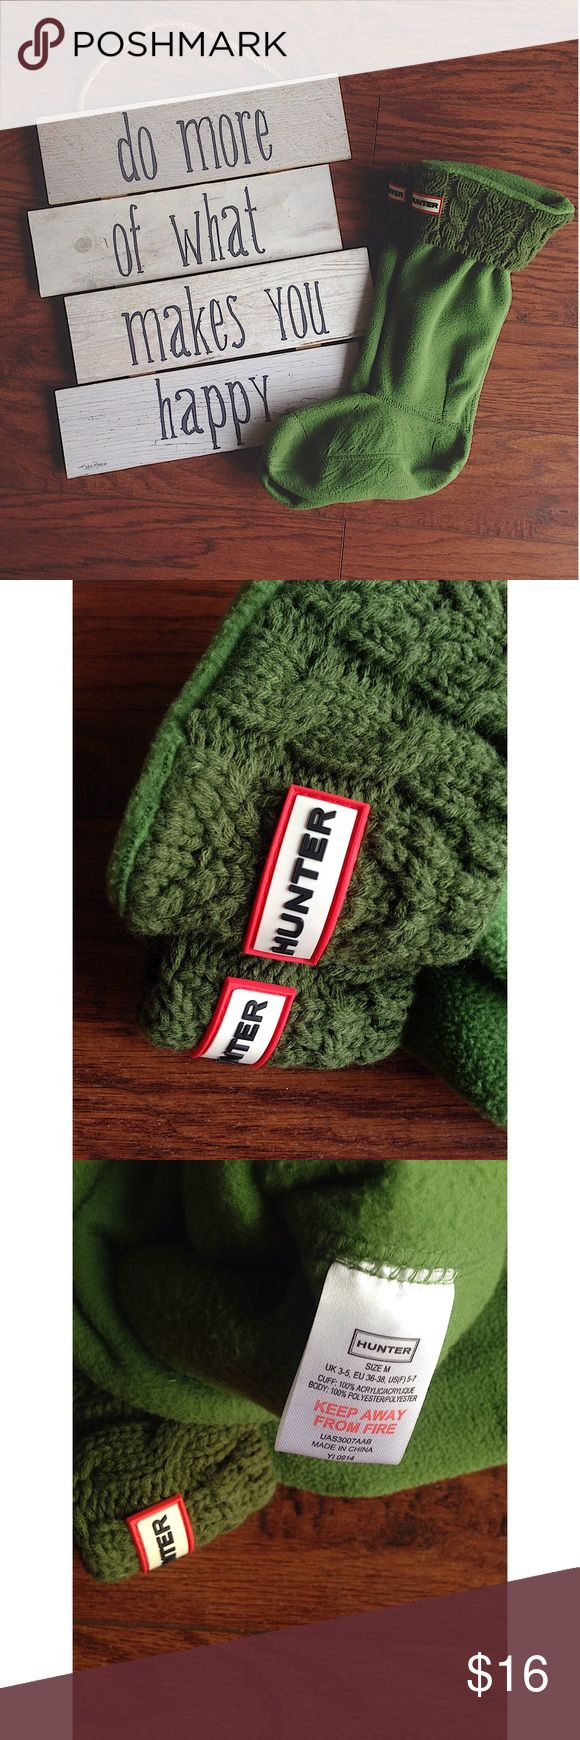 Hunter Boot Liners In perfect condition, used only once. Forest green knit material. Hunter Boots Accessories Hosiery & Socks